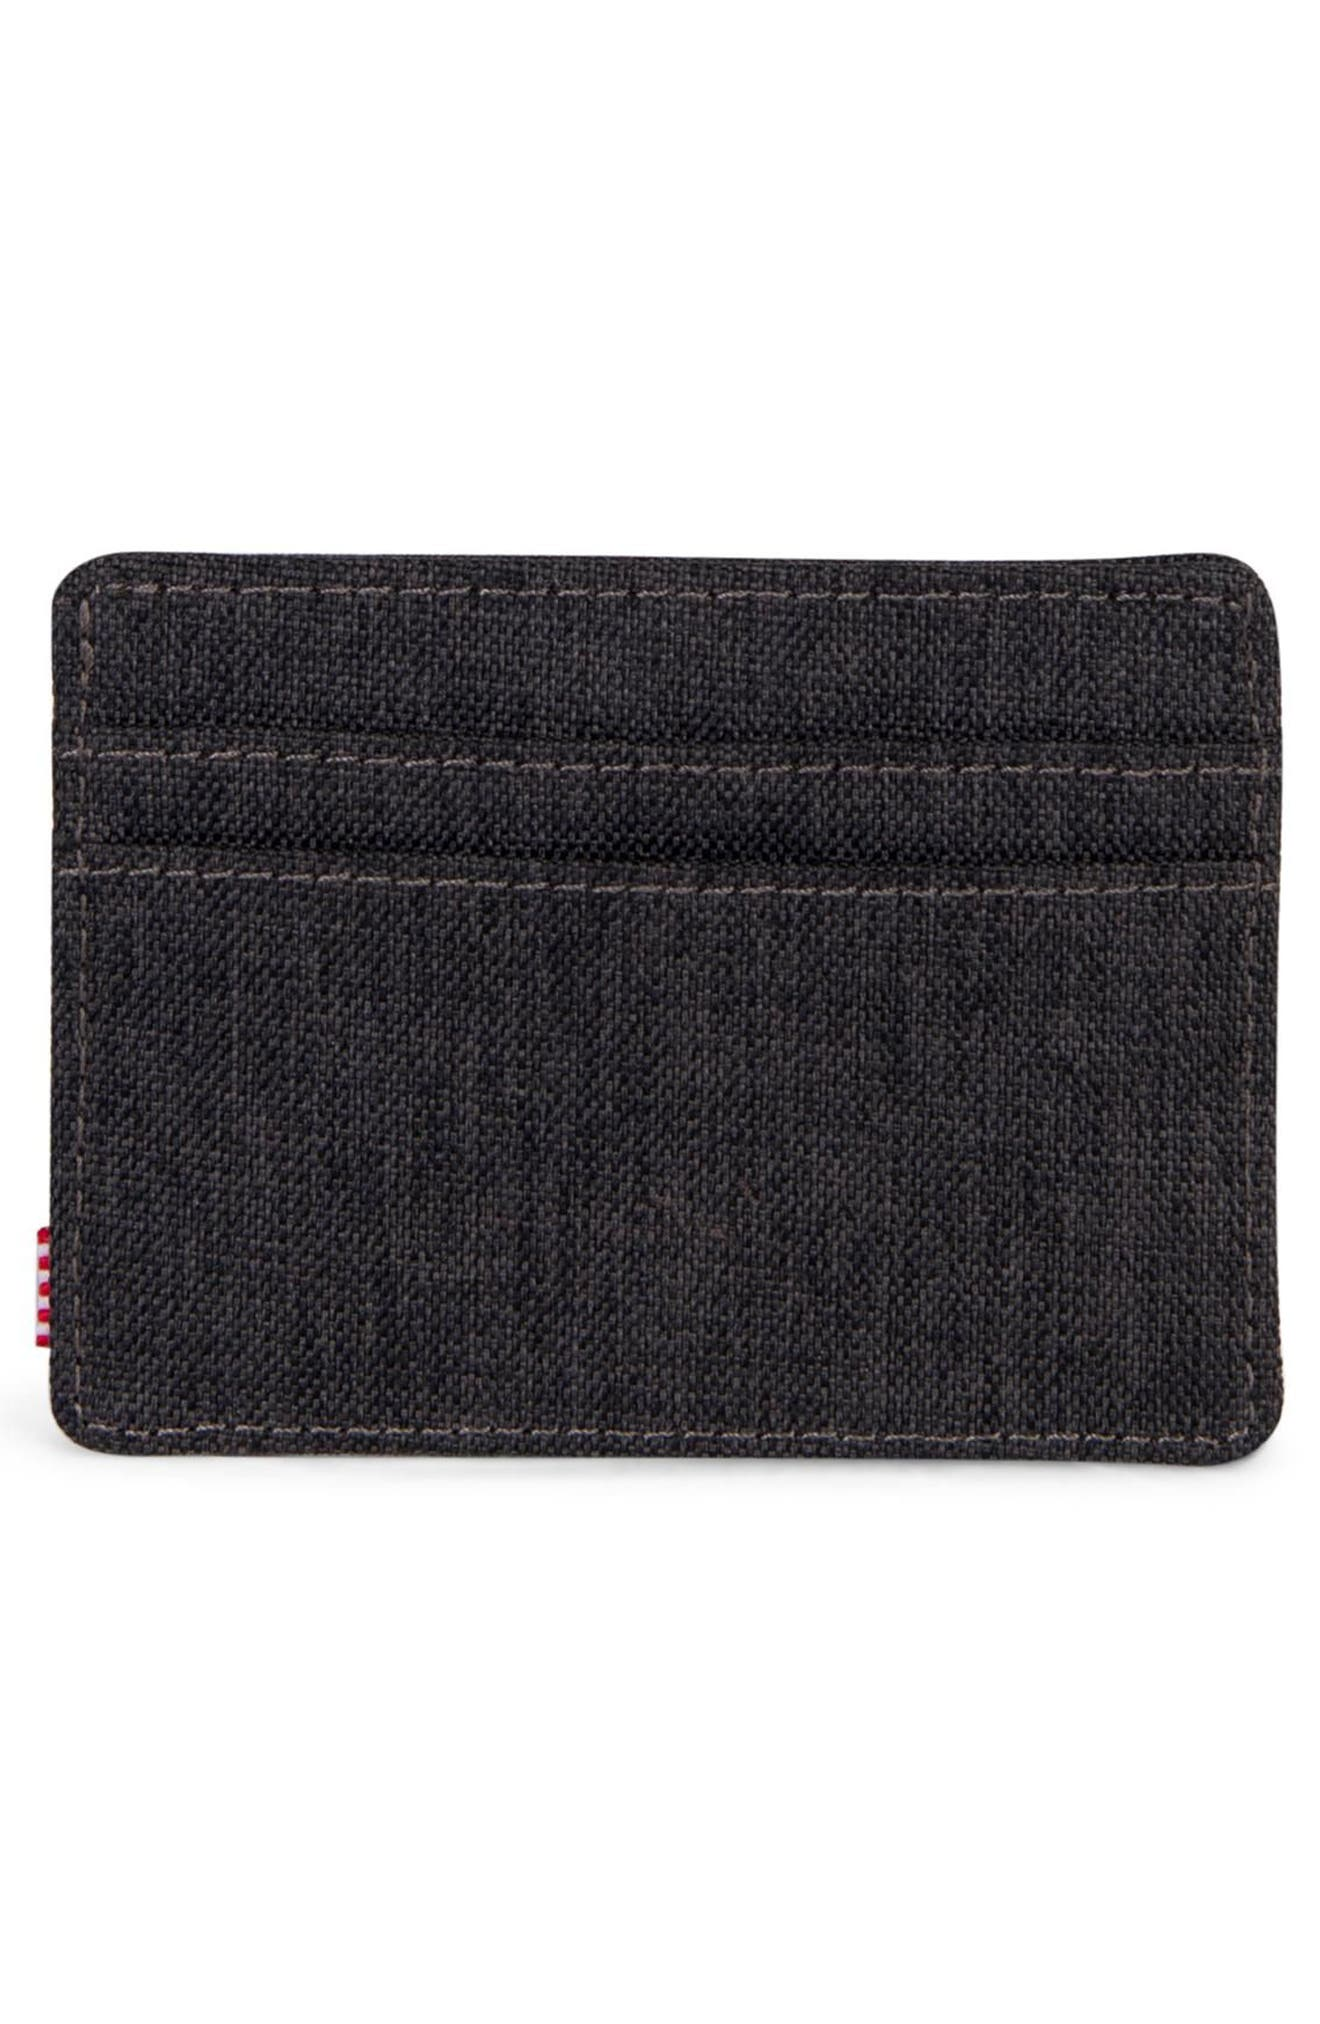 Charlie RFID Card Case,                             Alternate thumbnail 3, color,                             BLACK CROSSHATCH